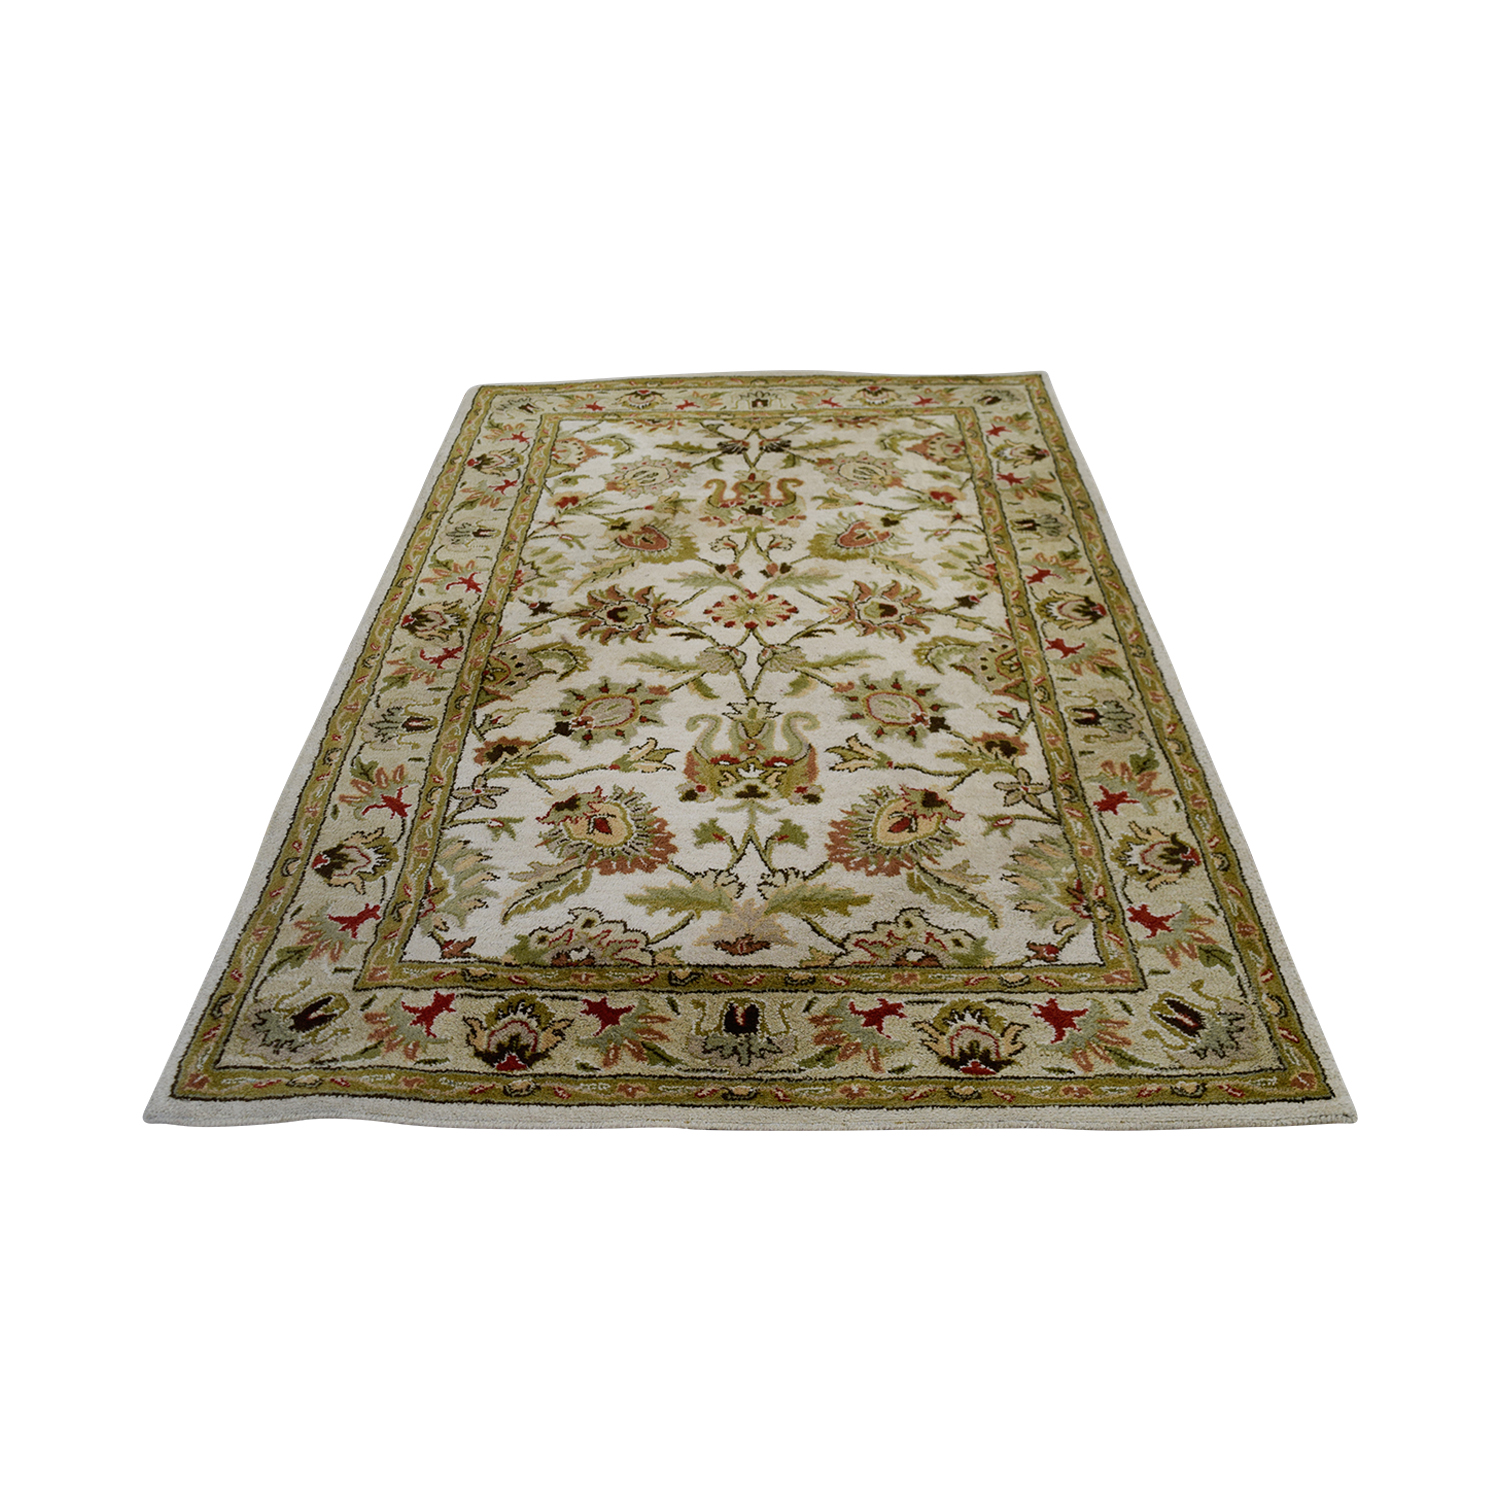 Surya Carpets Surya Carpets Kaleen Ivory and Beige Wool Carpet Decor